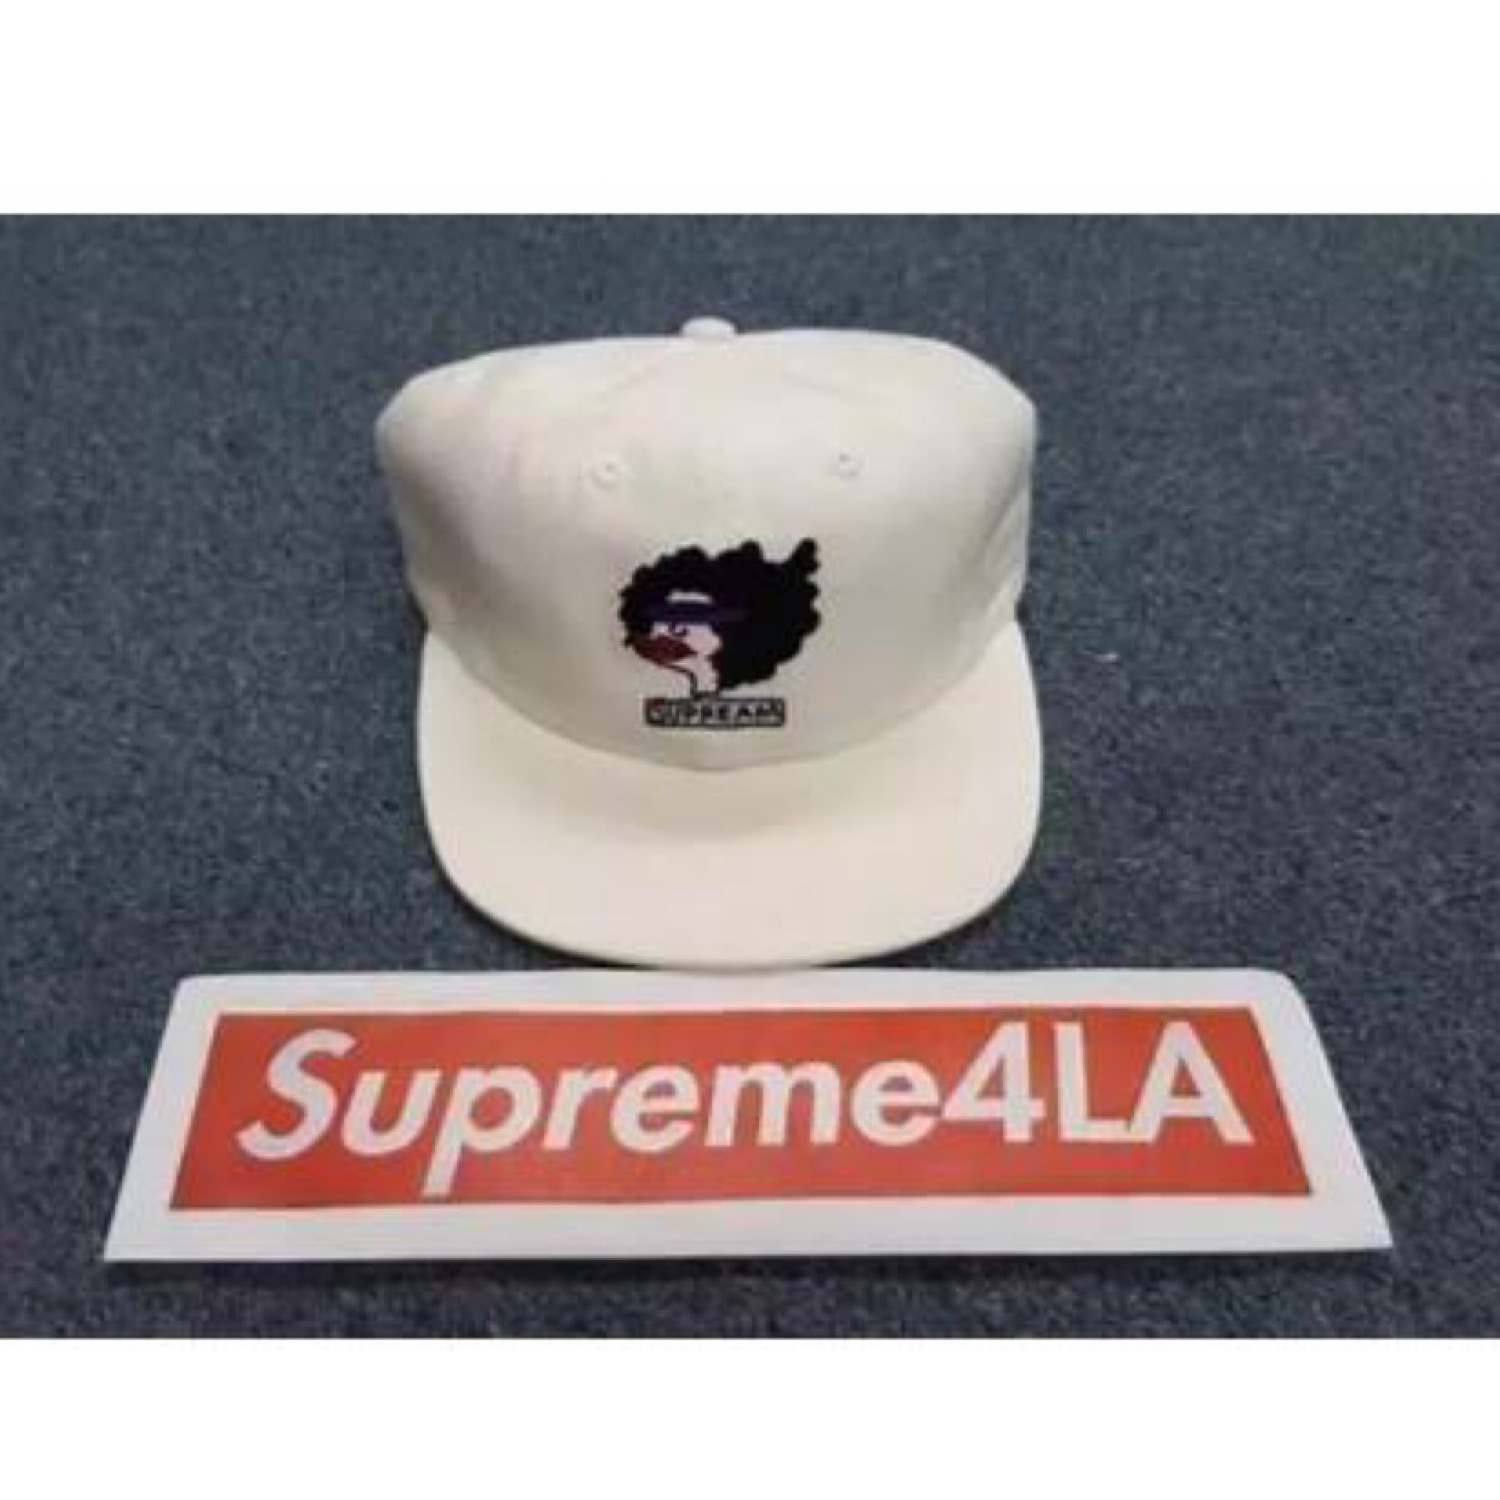 Supreme 17F//W Gonz Ramm 6-Panel Hat White 1000/% Authentic in Hand